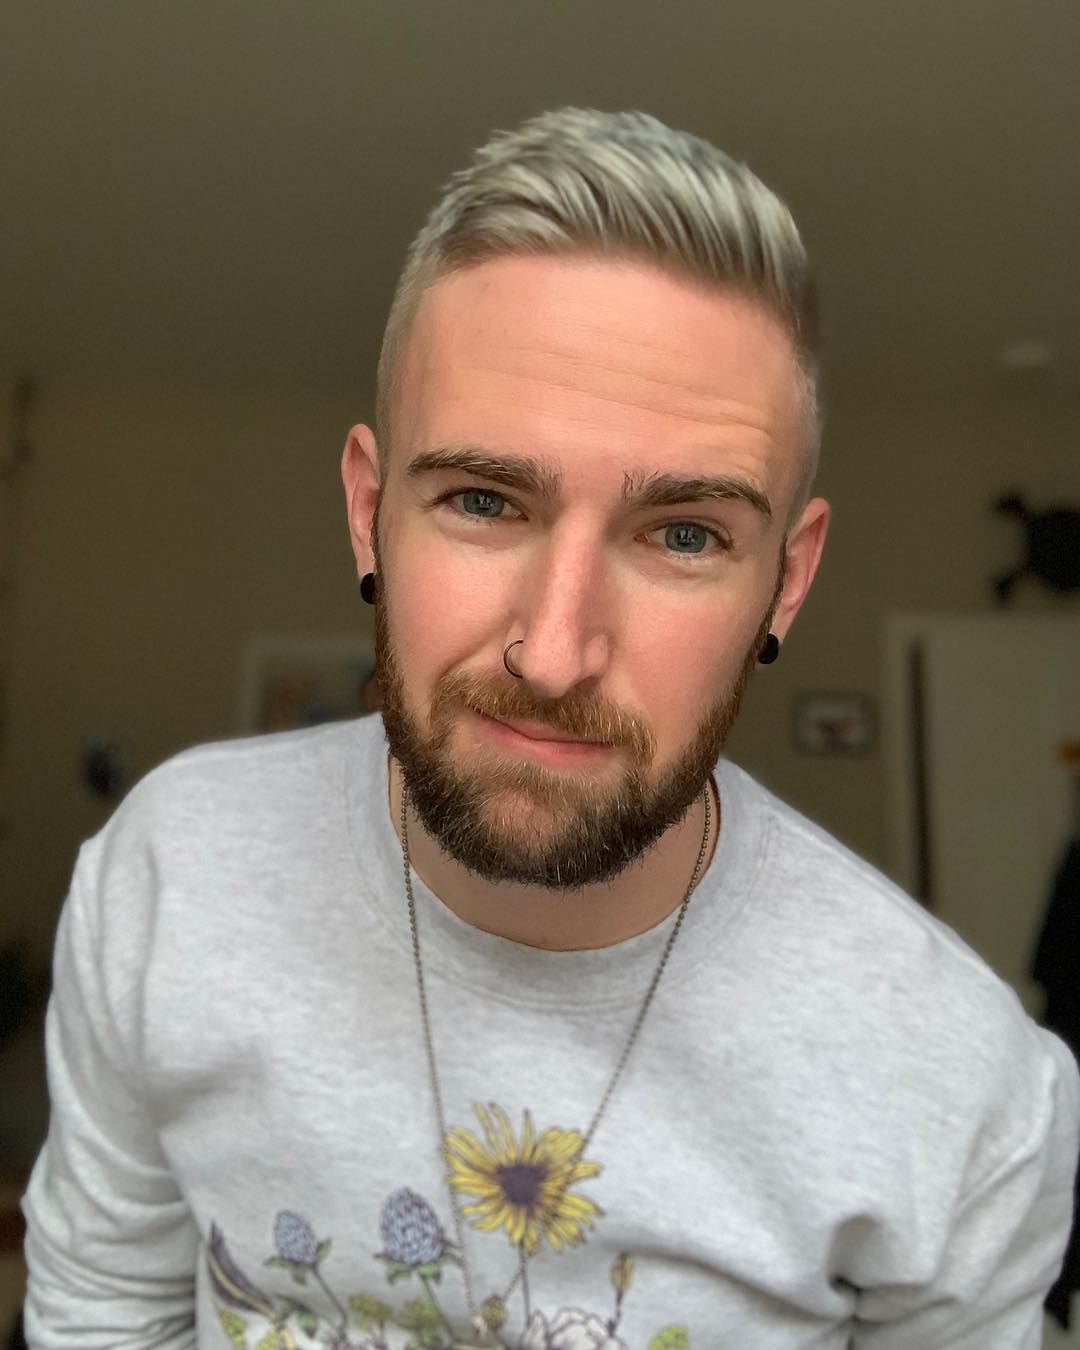 Eat your heart out anderson cooper newhairwhodis short hair men